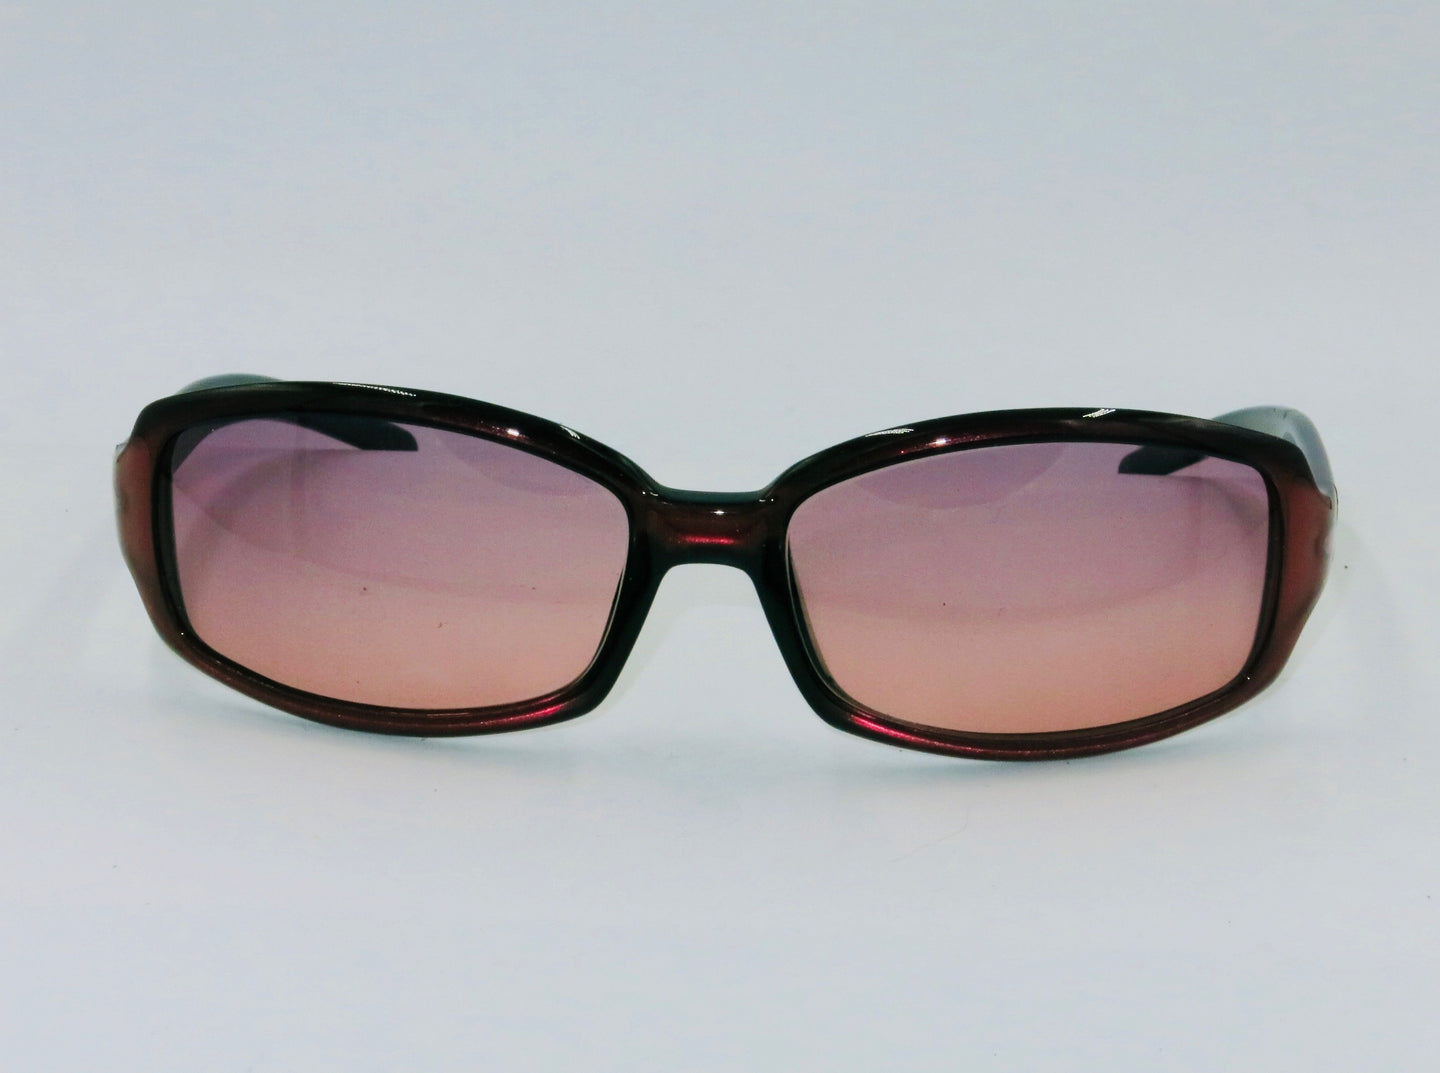 Fendi Sunglasses FS 267 | Sunglasses by Fendi